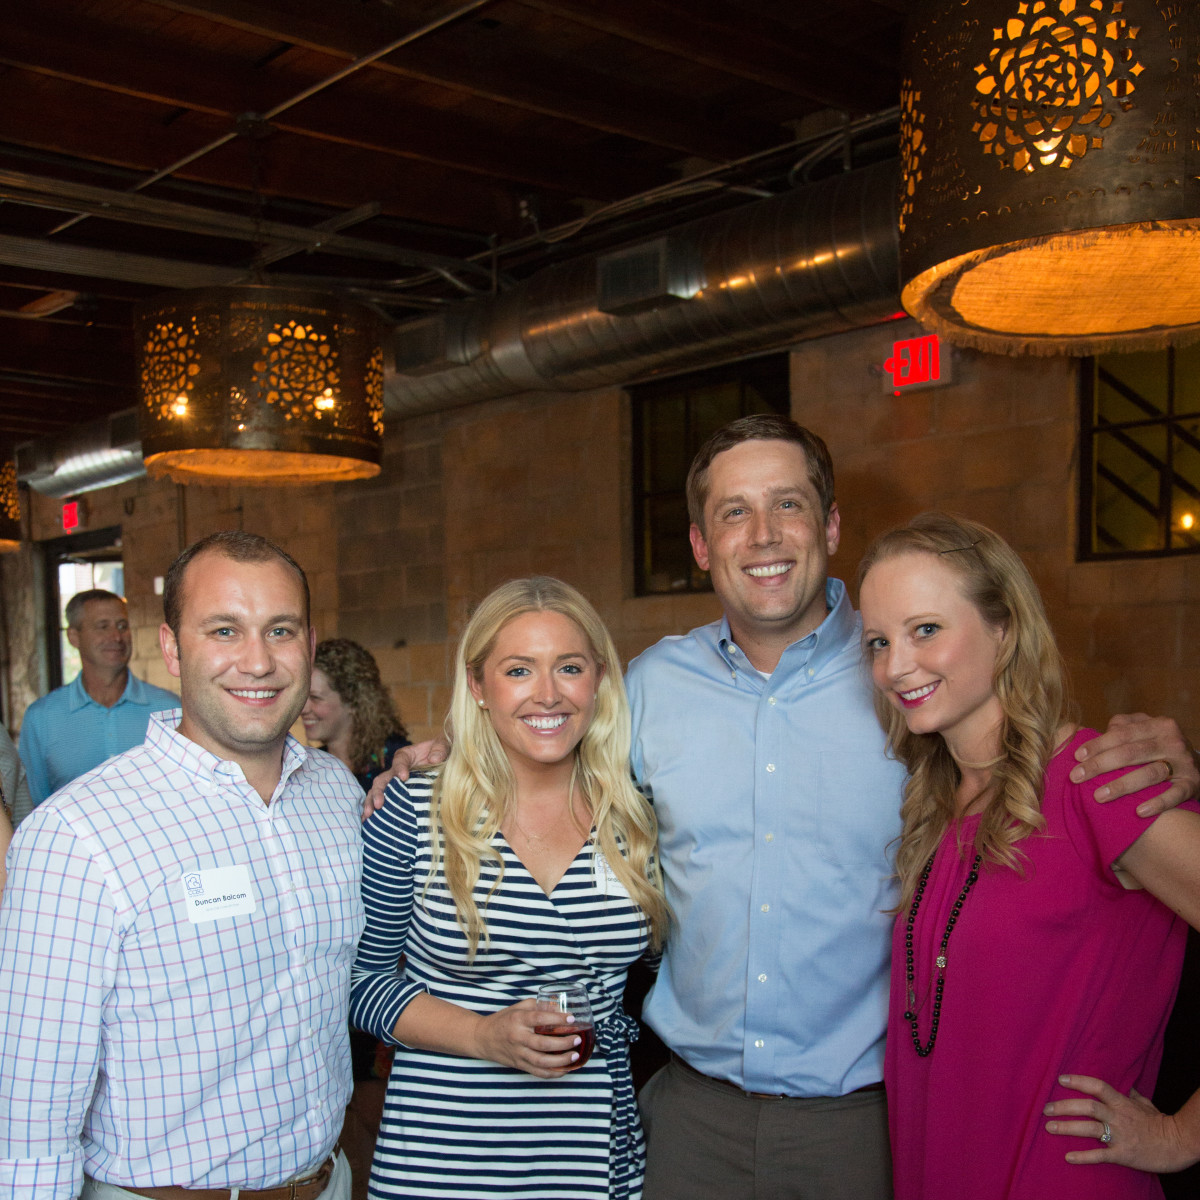 Houston, Casa de Esperanza YP Happy Hour, September 2015, Duncan Balcom, Jordan Balcom, Chris Manuel, Katie Manuel.